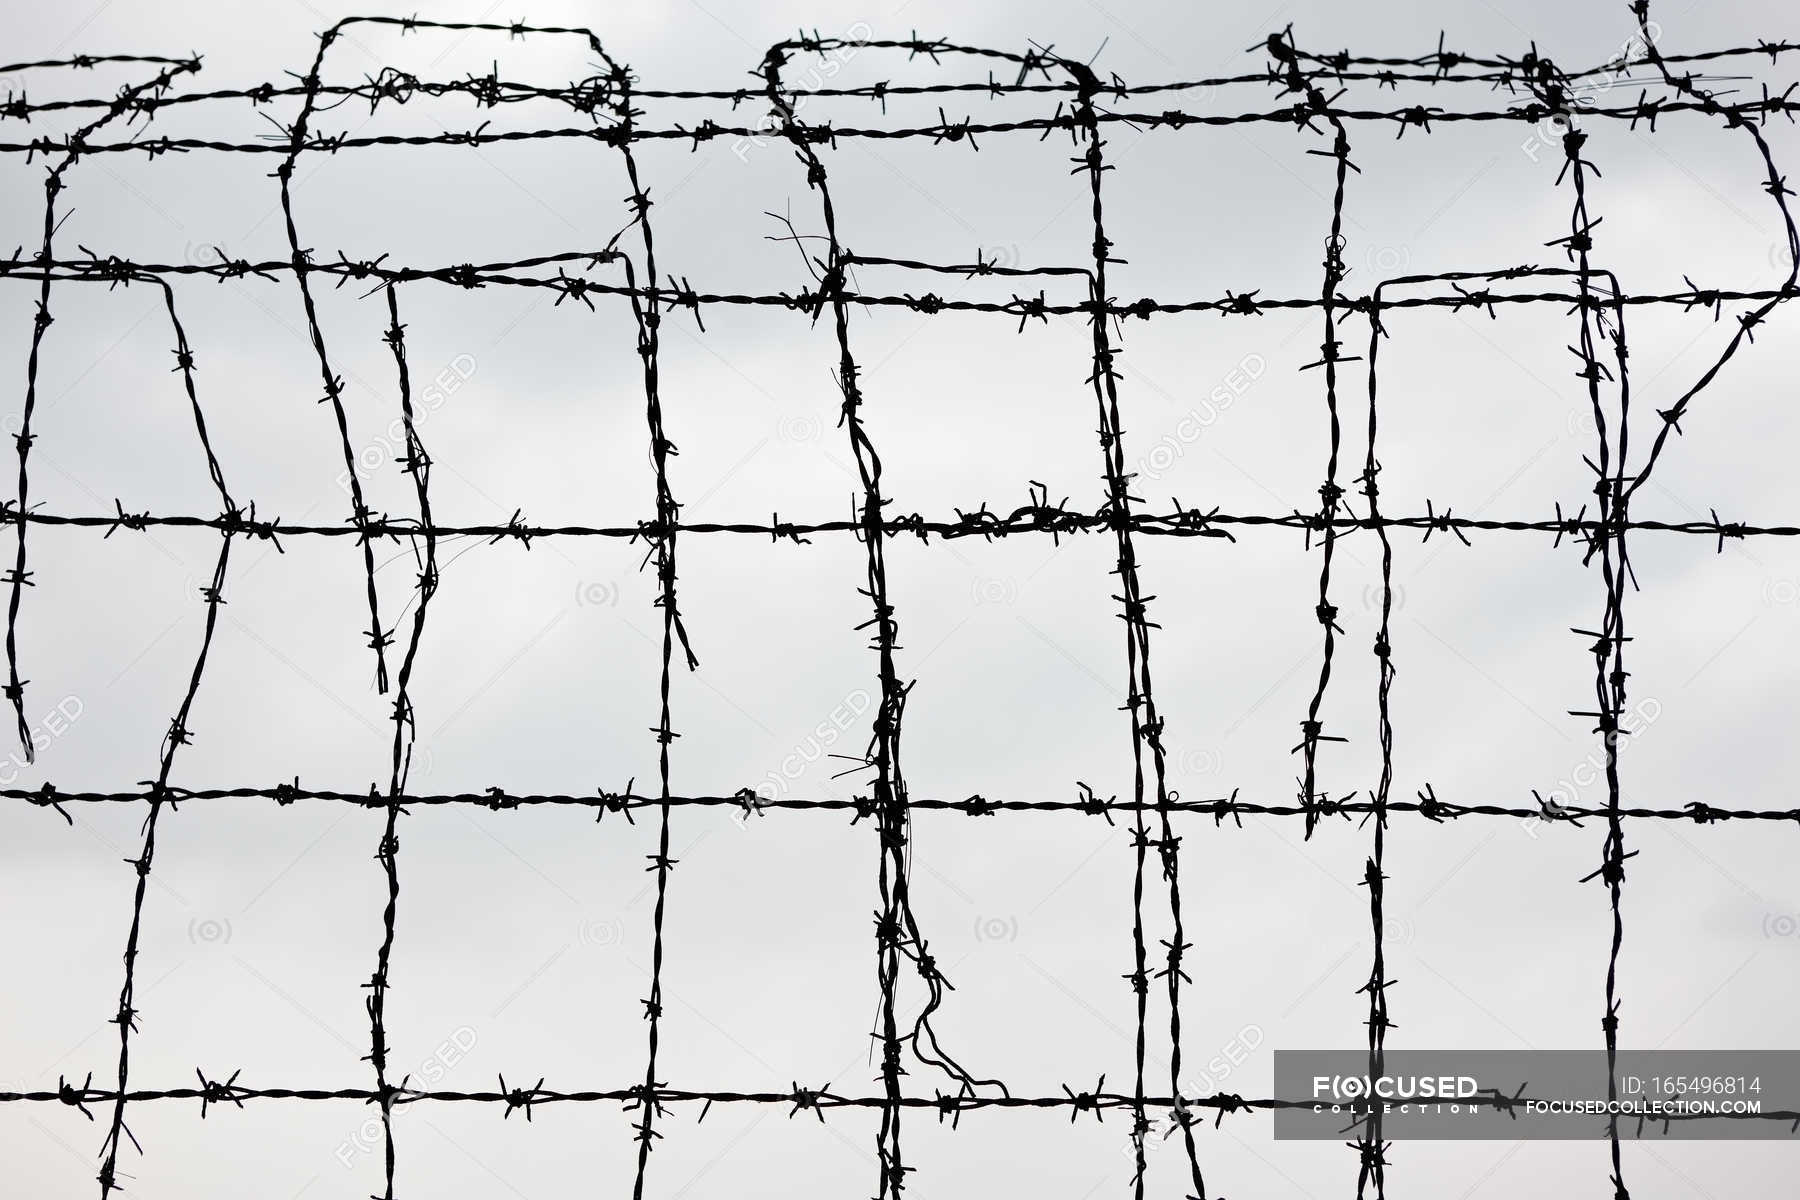 Barb wire - Stock Photos, Royalty Free Images | Focused